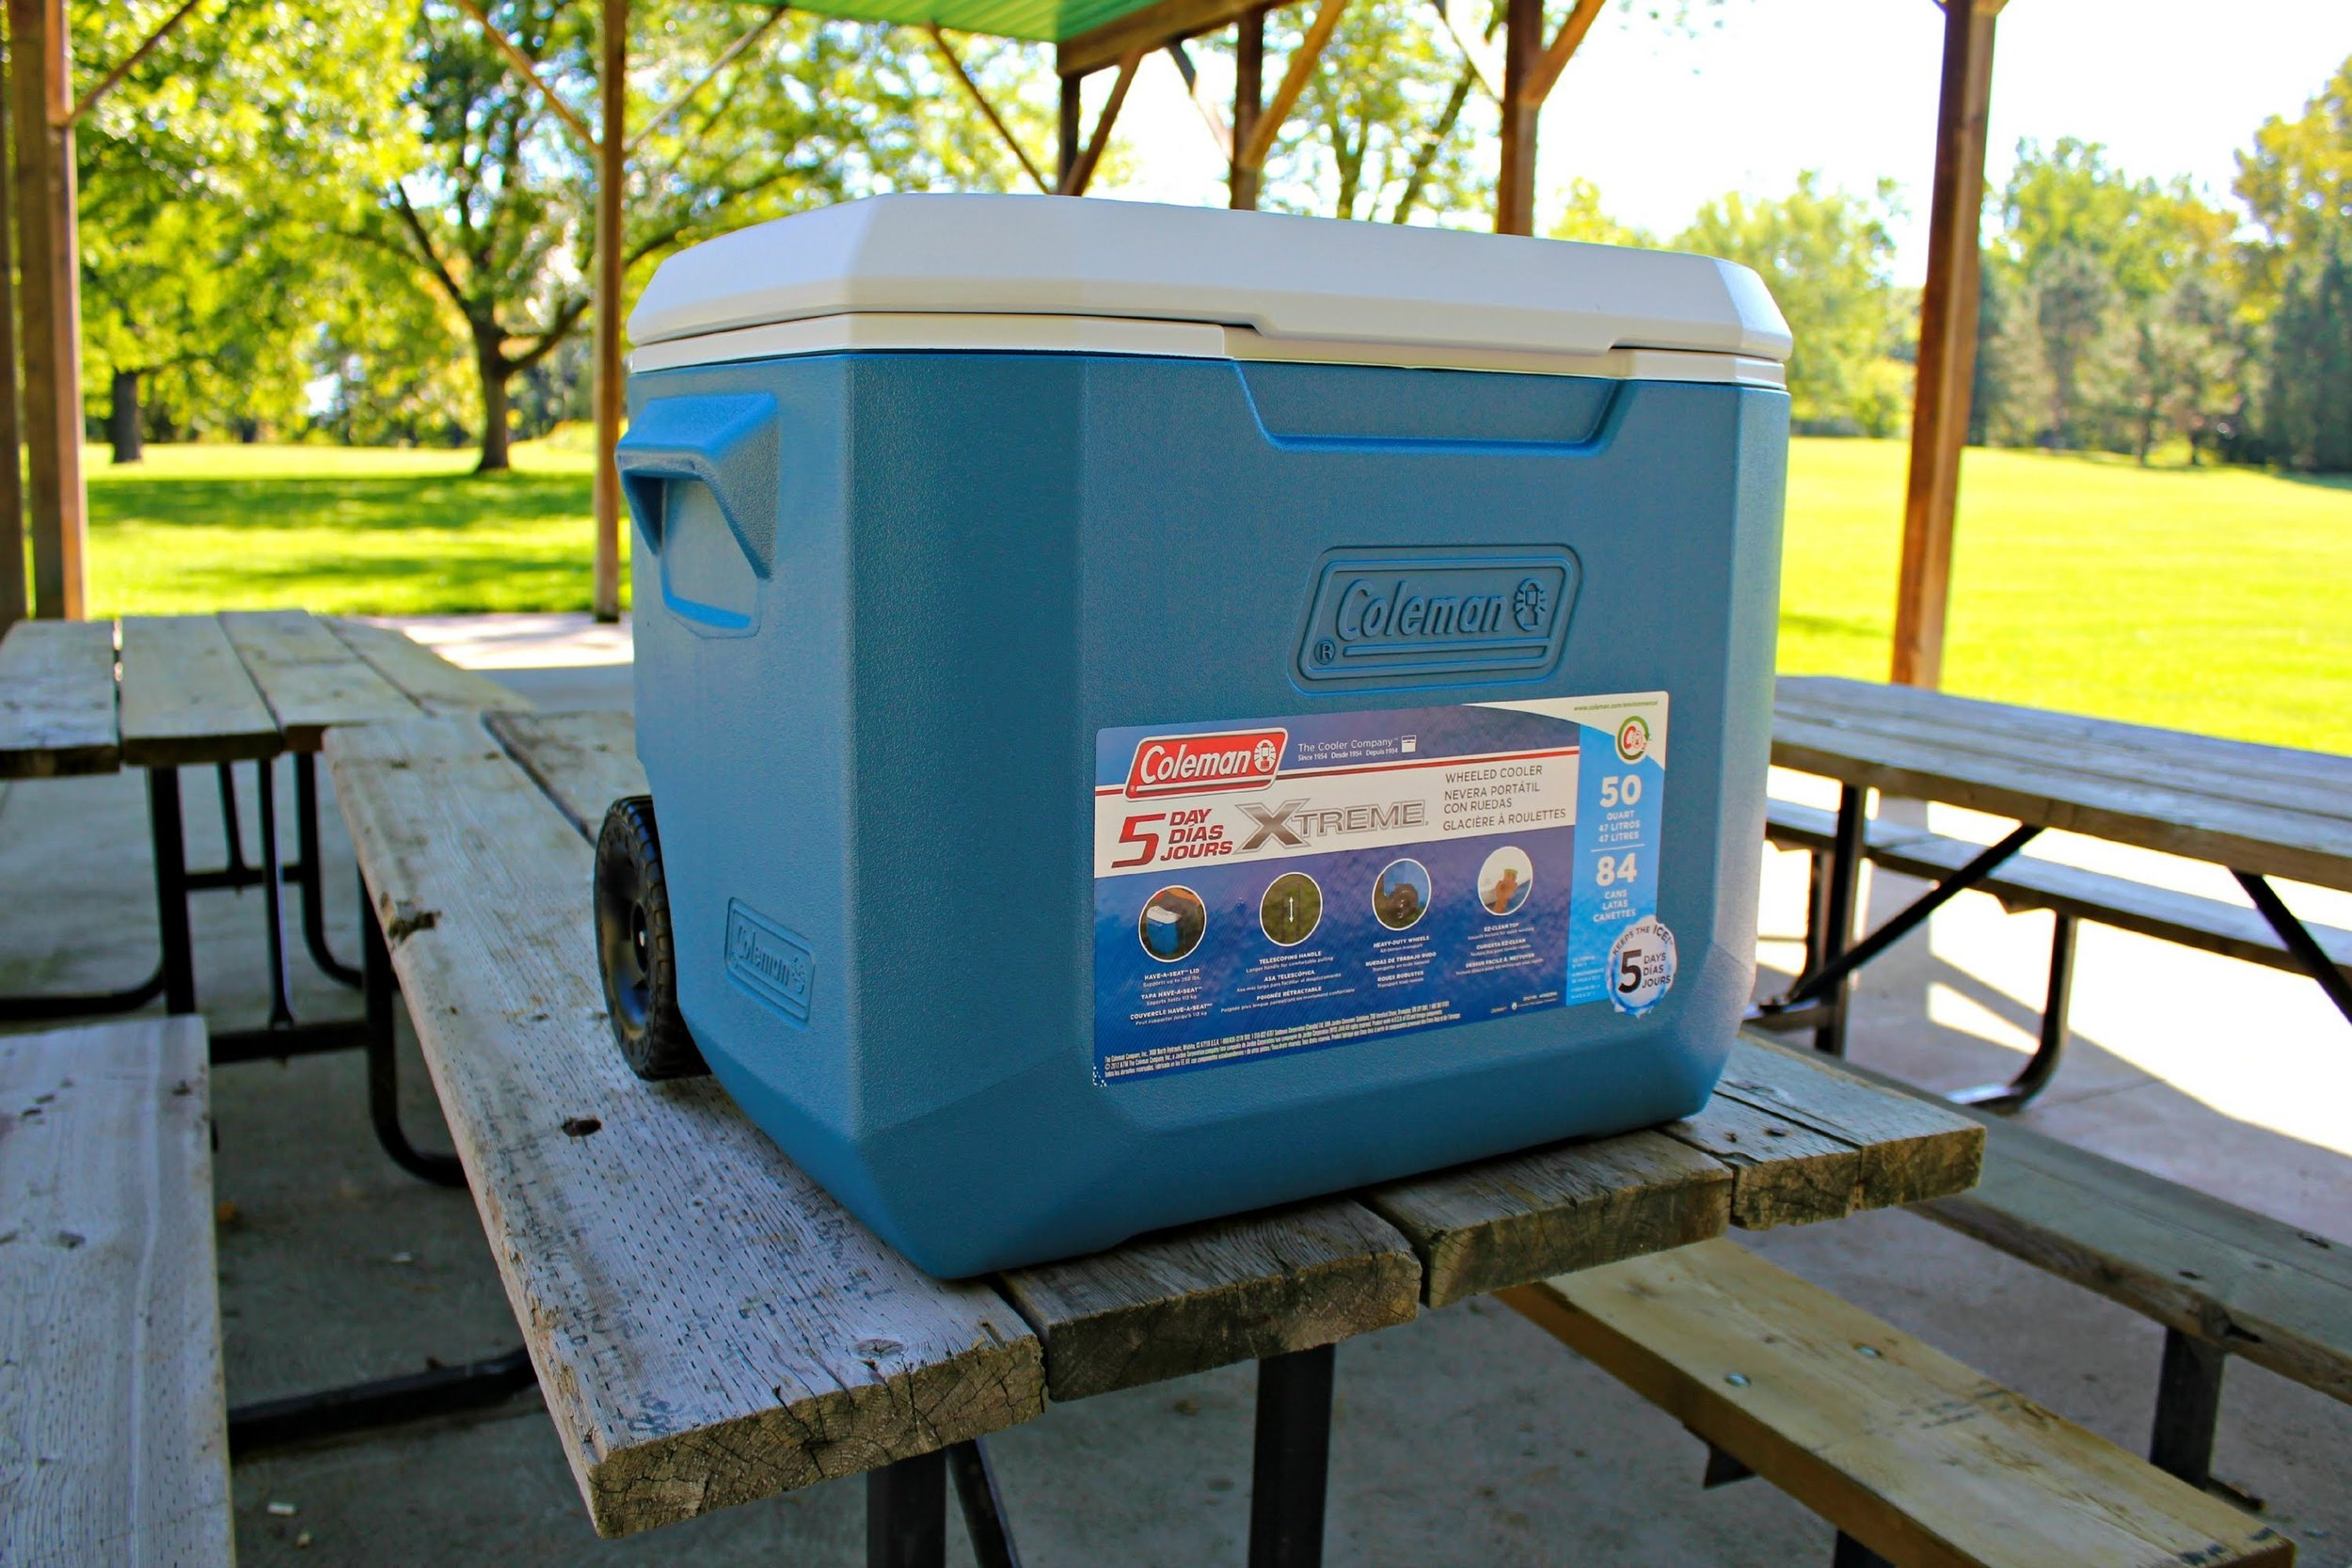 coleman xtreme coolers, coleman coolers with wheels, coleman xtreme cooler